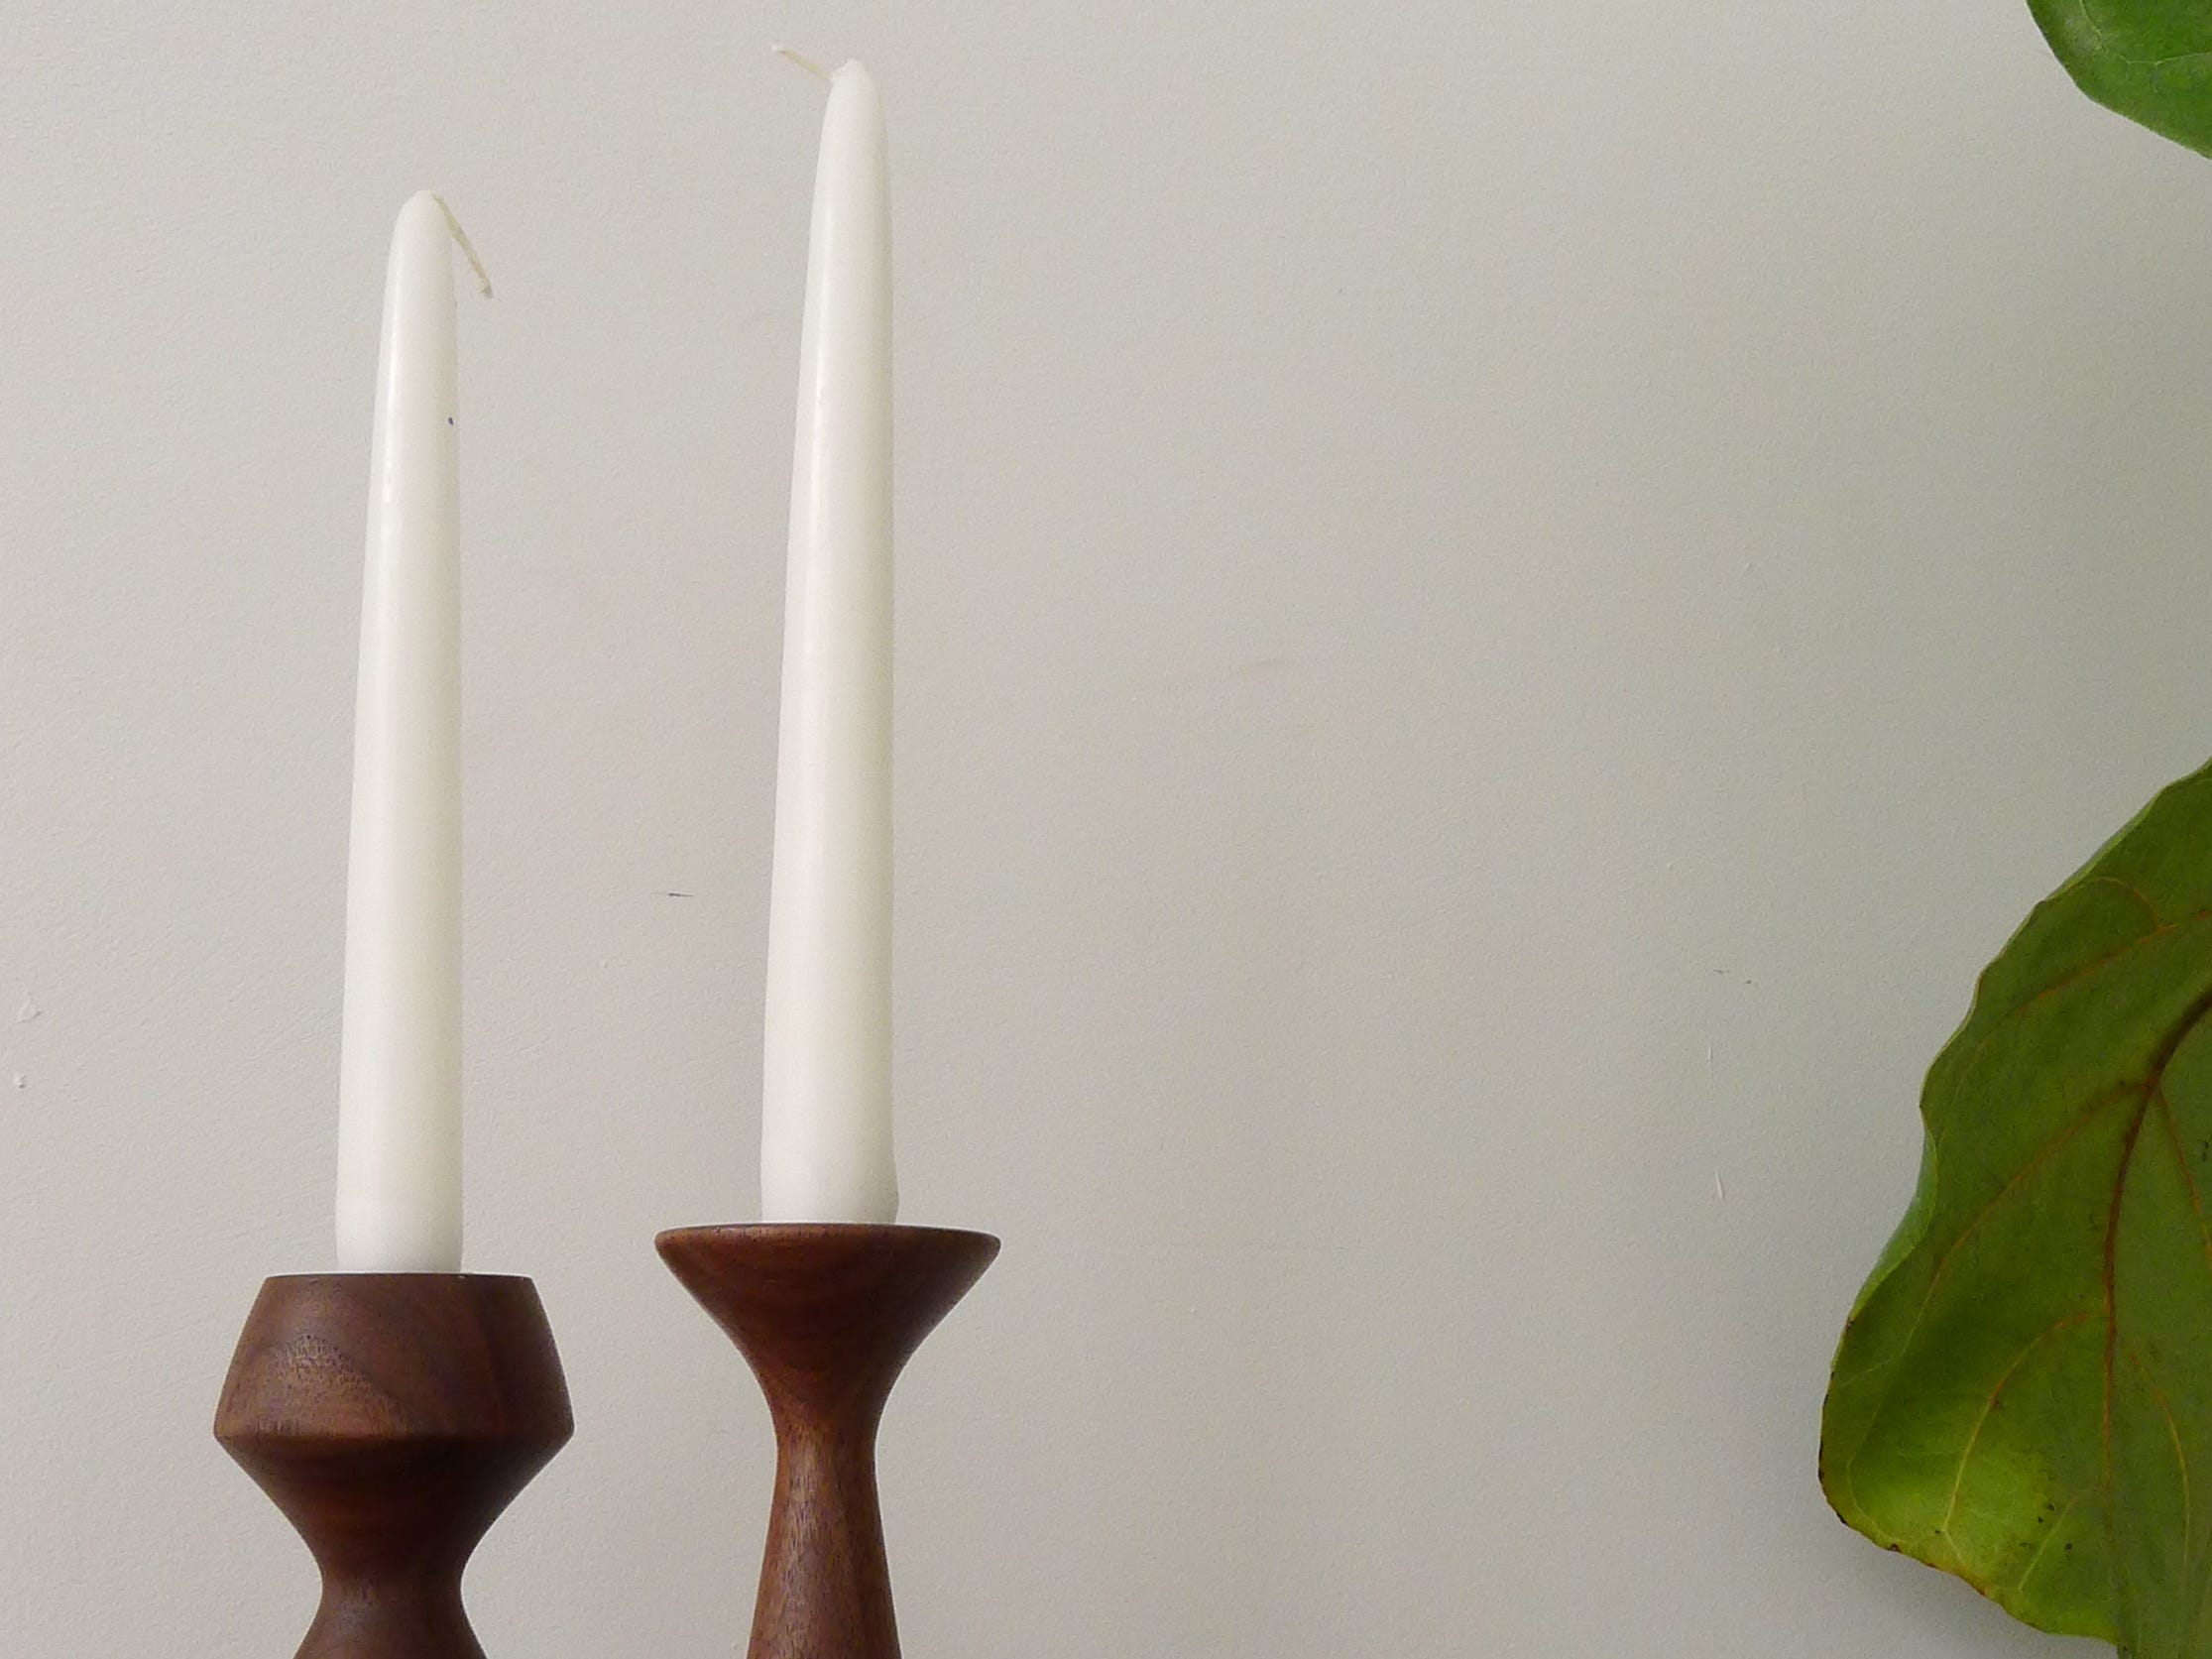 These walnut candlestick holders are hand-crafted by Kyle Huntoon of Hunt & Noyer Woodworks in Detroit. Inspired by Danish, Deco, and midcentury designs, they range in price from $38-$64. They're available at Next:Space's Holiday Small Shop, 2000 Hilton in Ferndale. It's open 12-6 p.m. Thursday through Saturday.